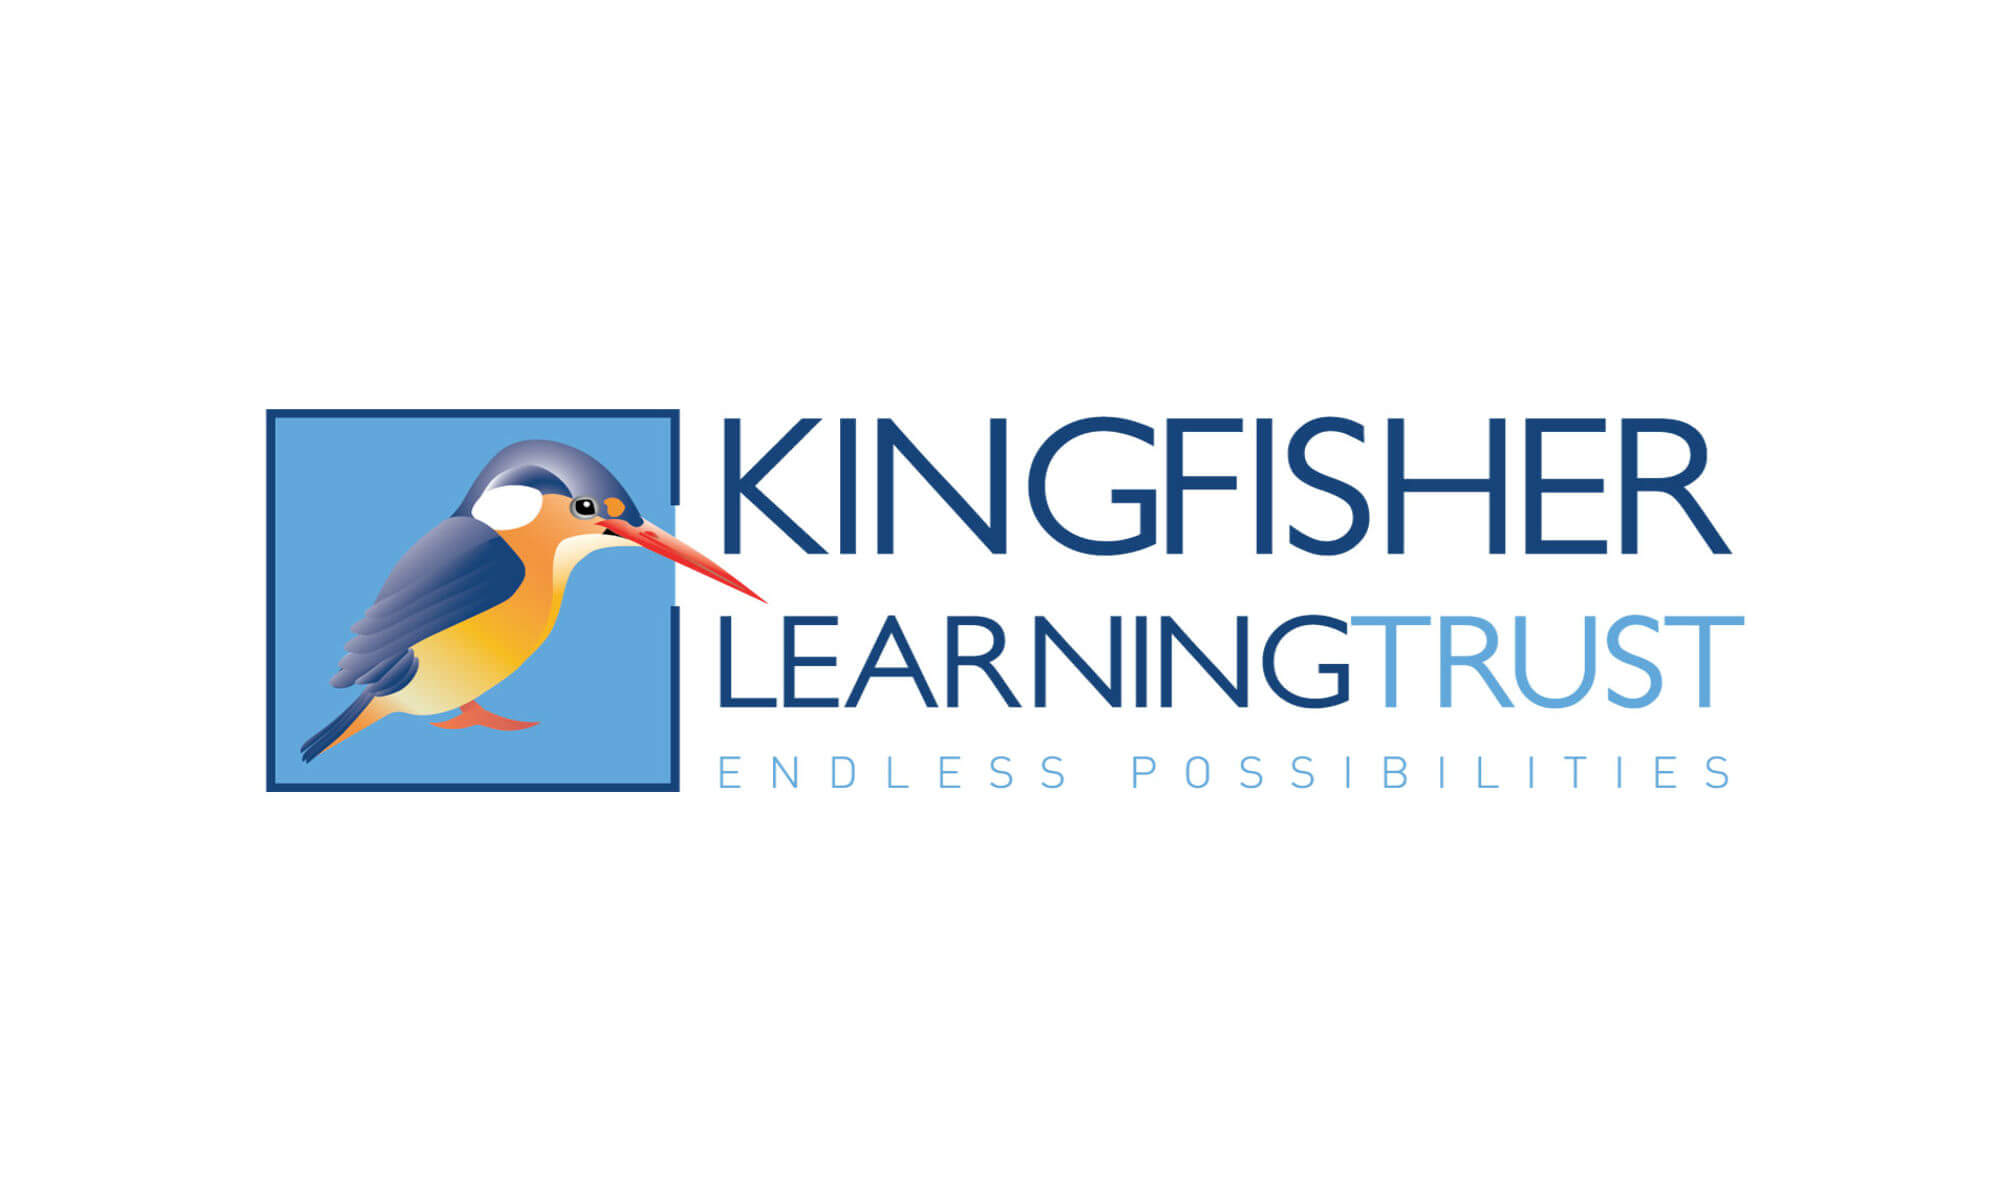 Kingfisher Learning Trust appoints Casserly Property Management to manage Medlock Valley